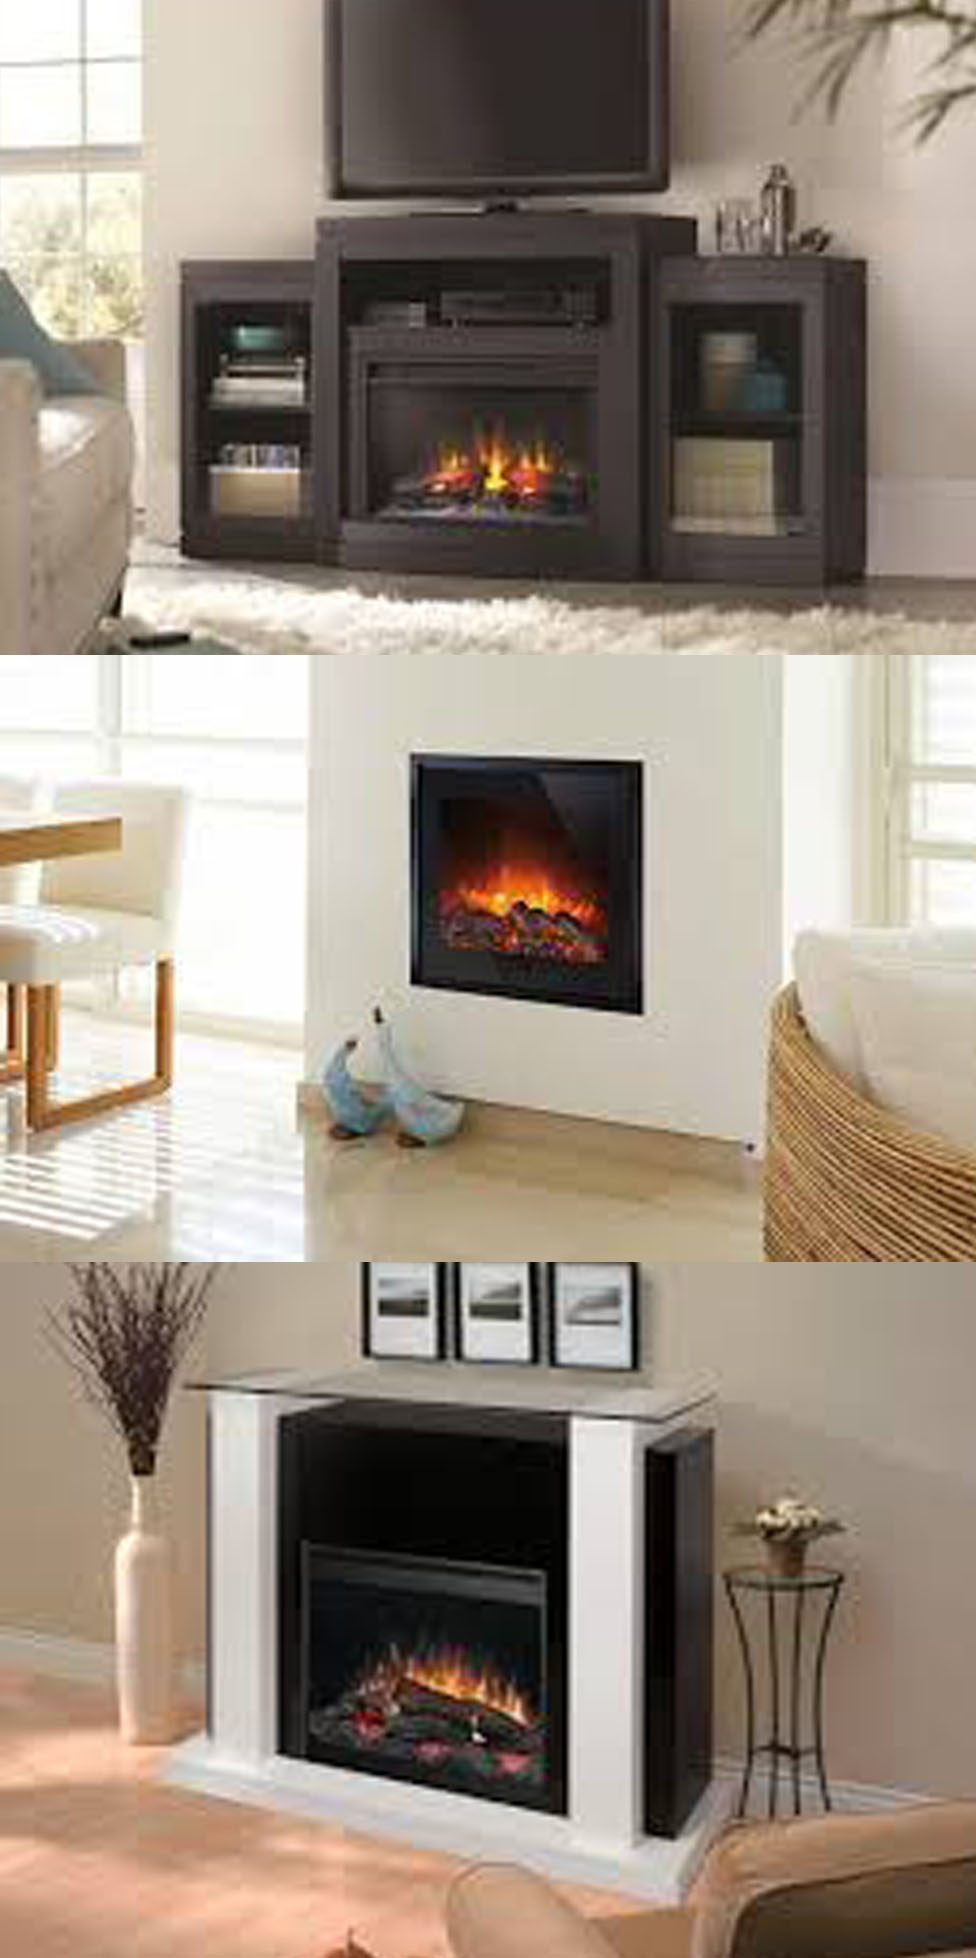 Muebles de salon con chimenea electrica gallery of cmo for Chimeneas electricas decorativas